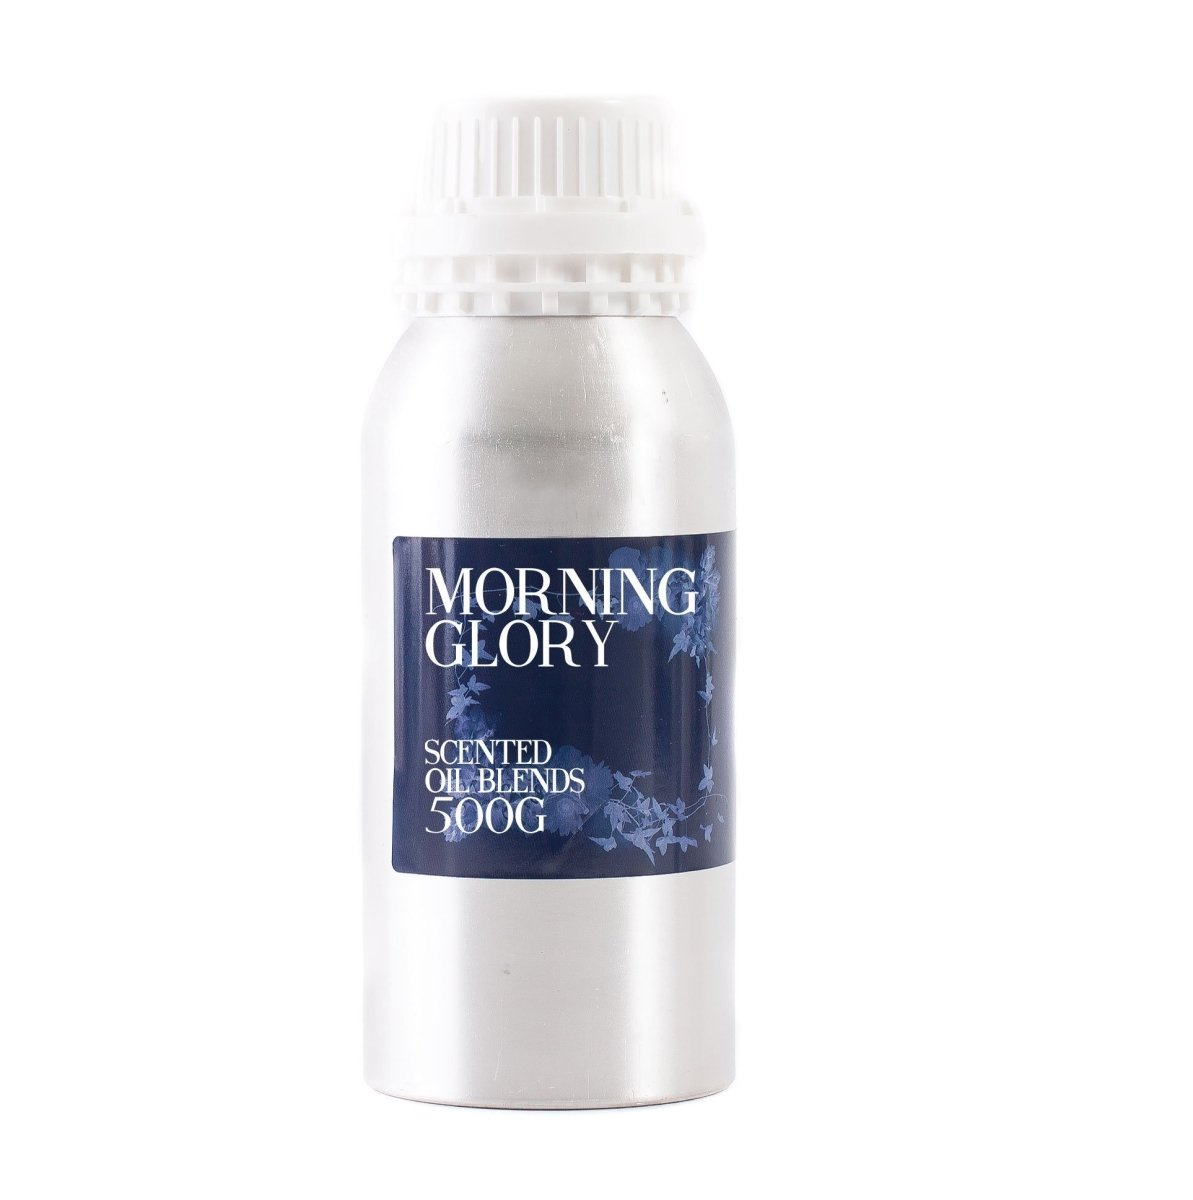 Morning Glory - Scented Oil Blend - Mystic Moments UK